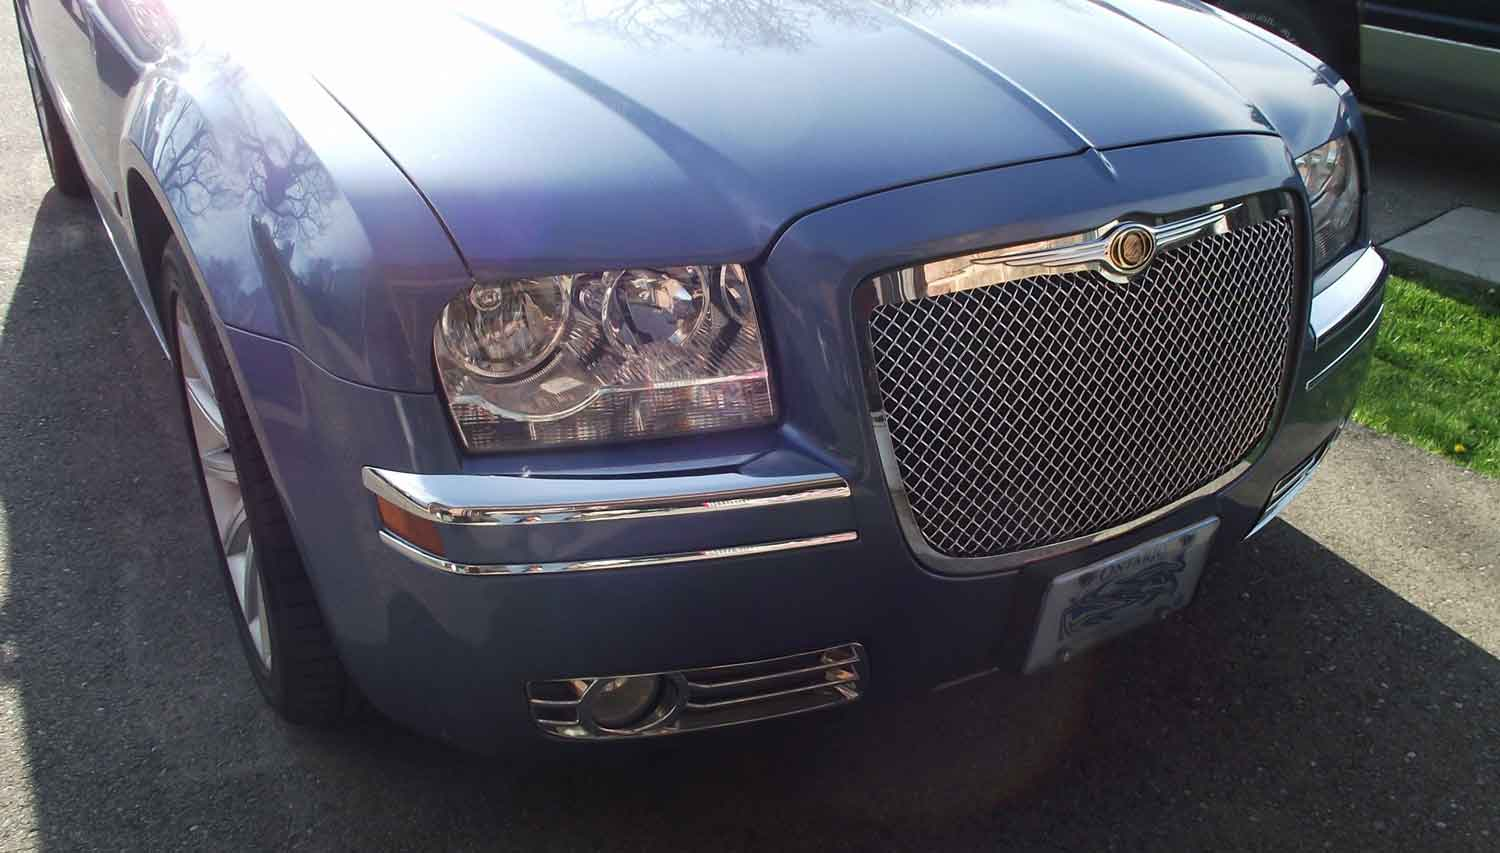 Chrysler 300 With Chrome Fog Light Cover Installed